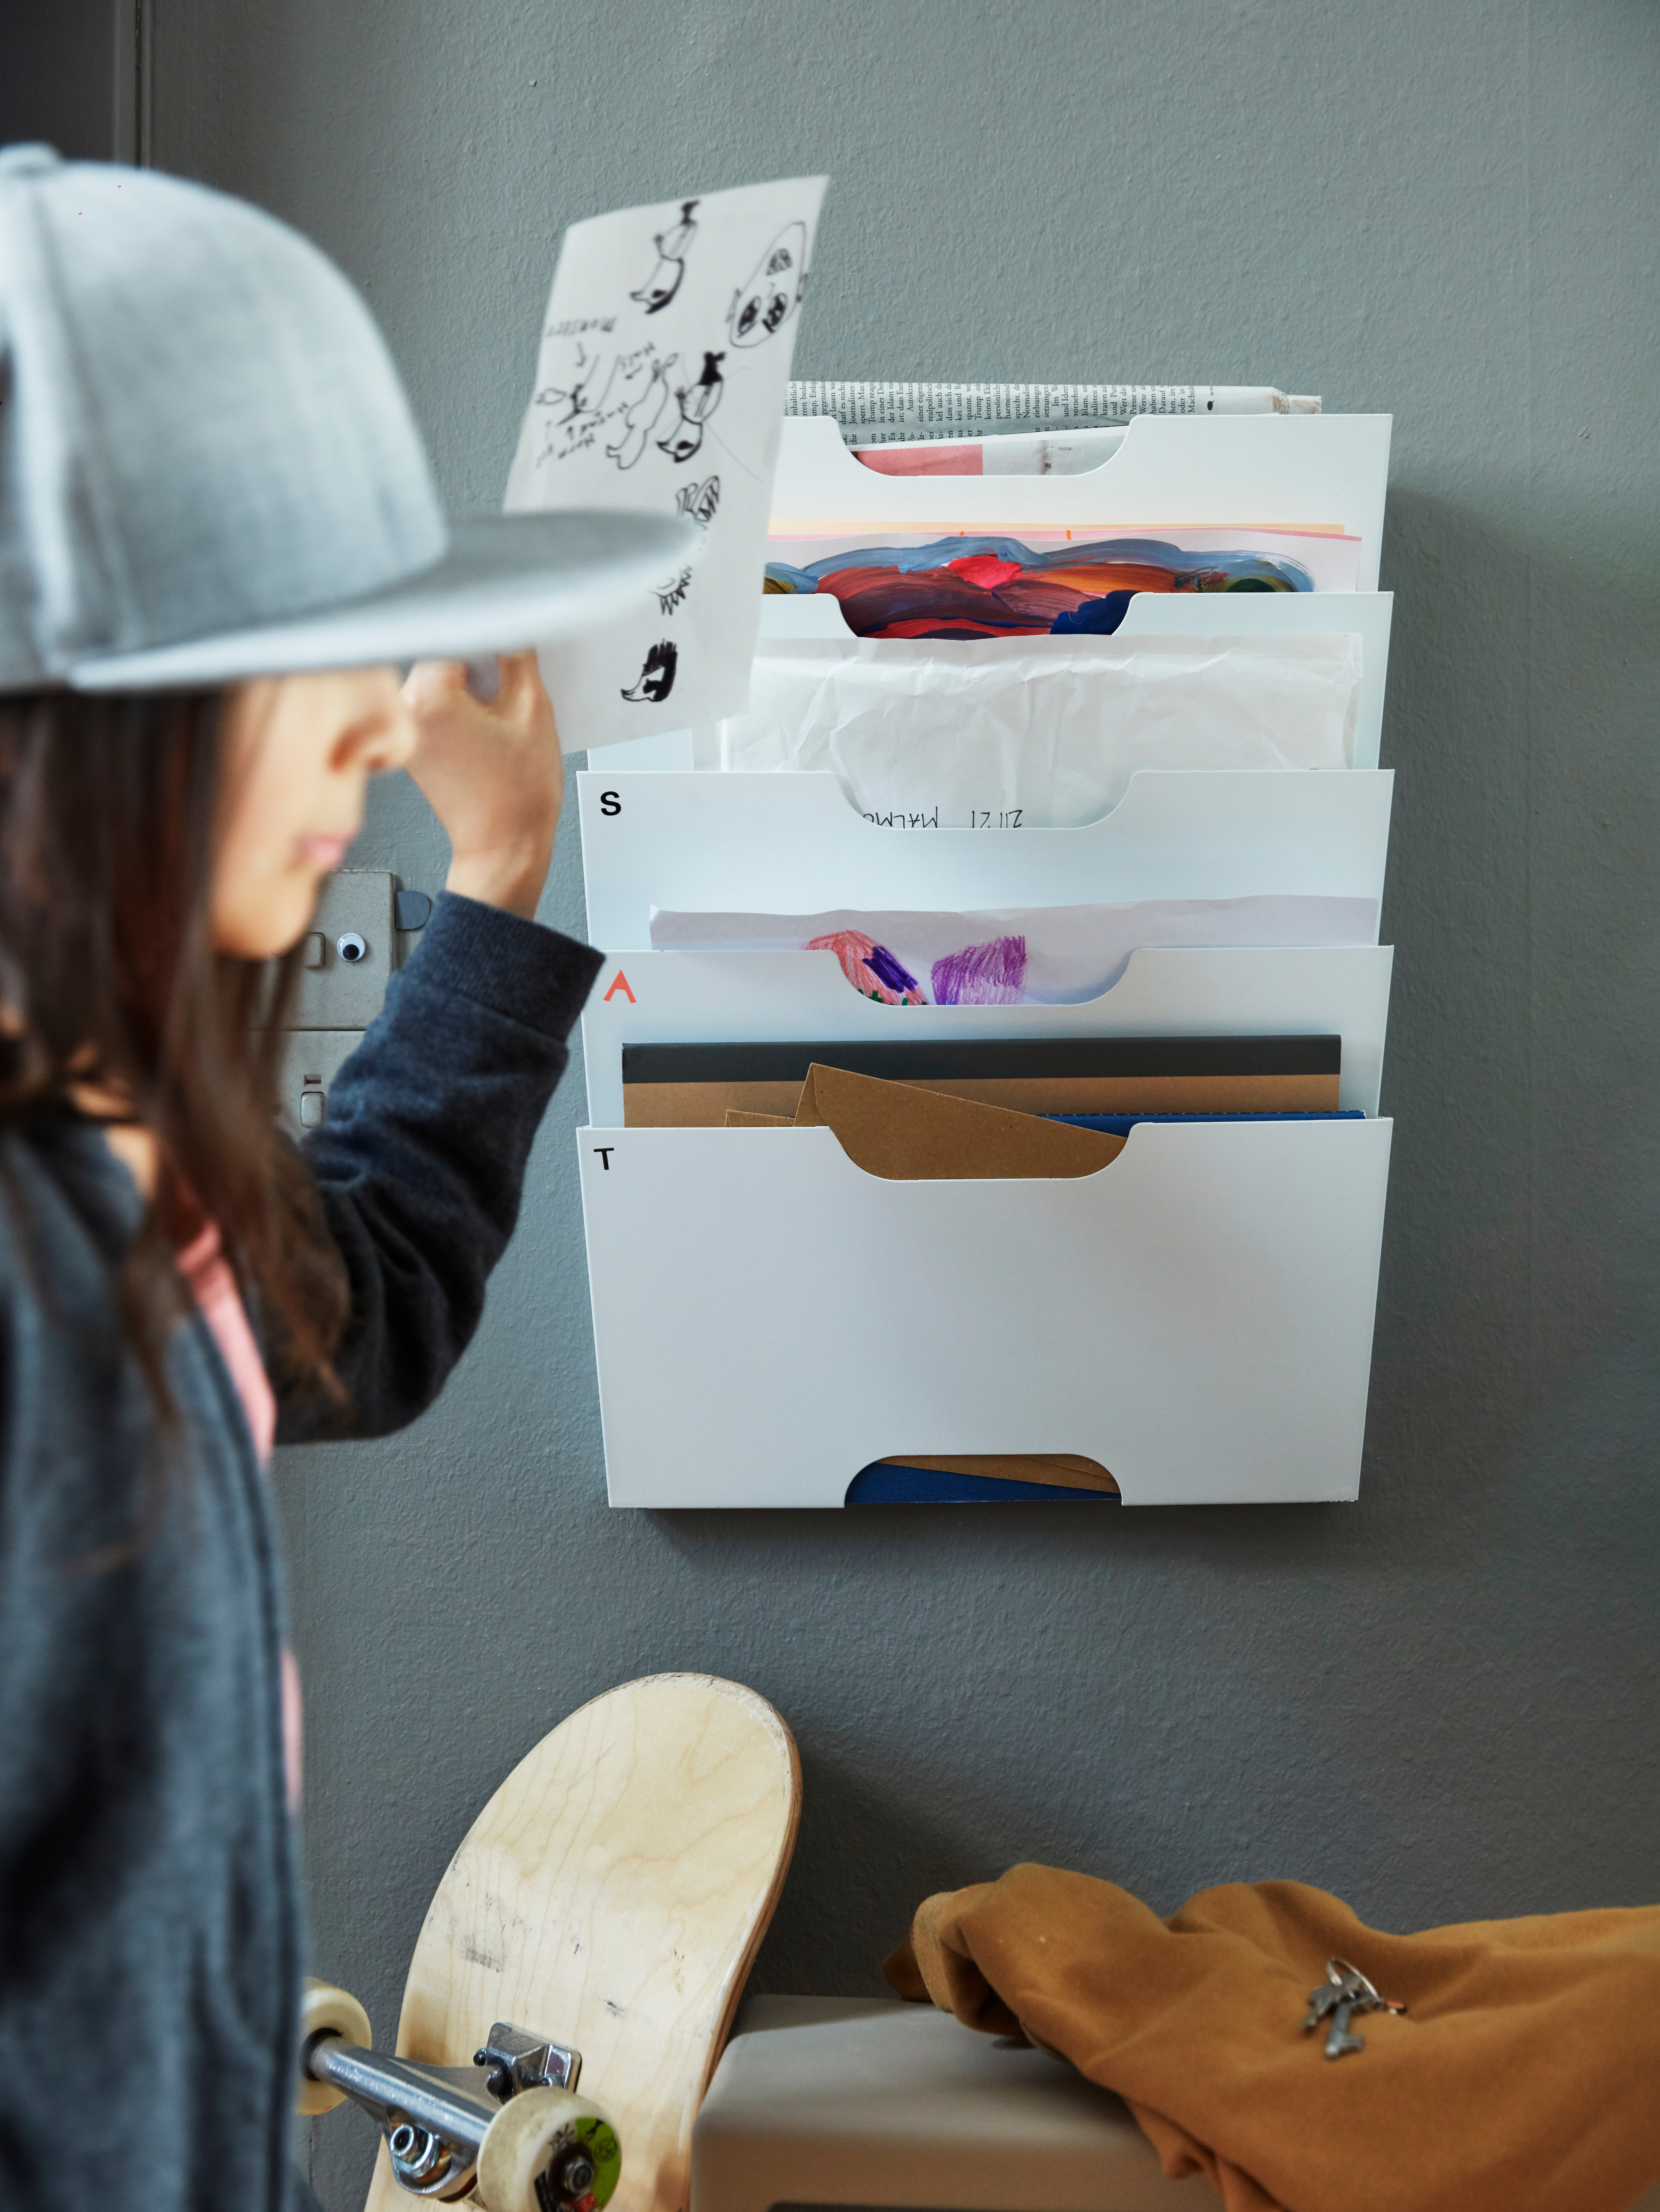 A person wearing a cap and carrying a skateboard puts a card into a white KVISSLE wall newspaper rack on the wall.